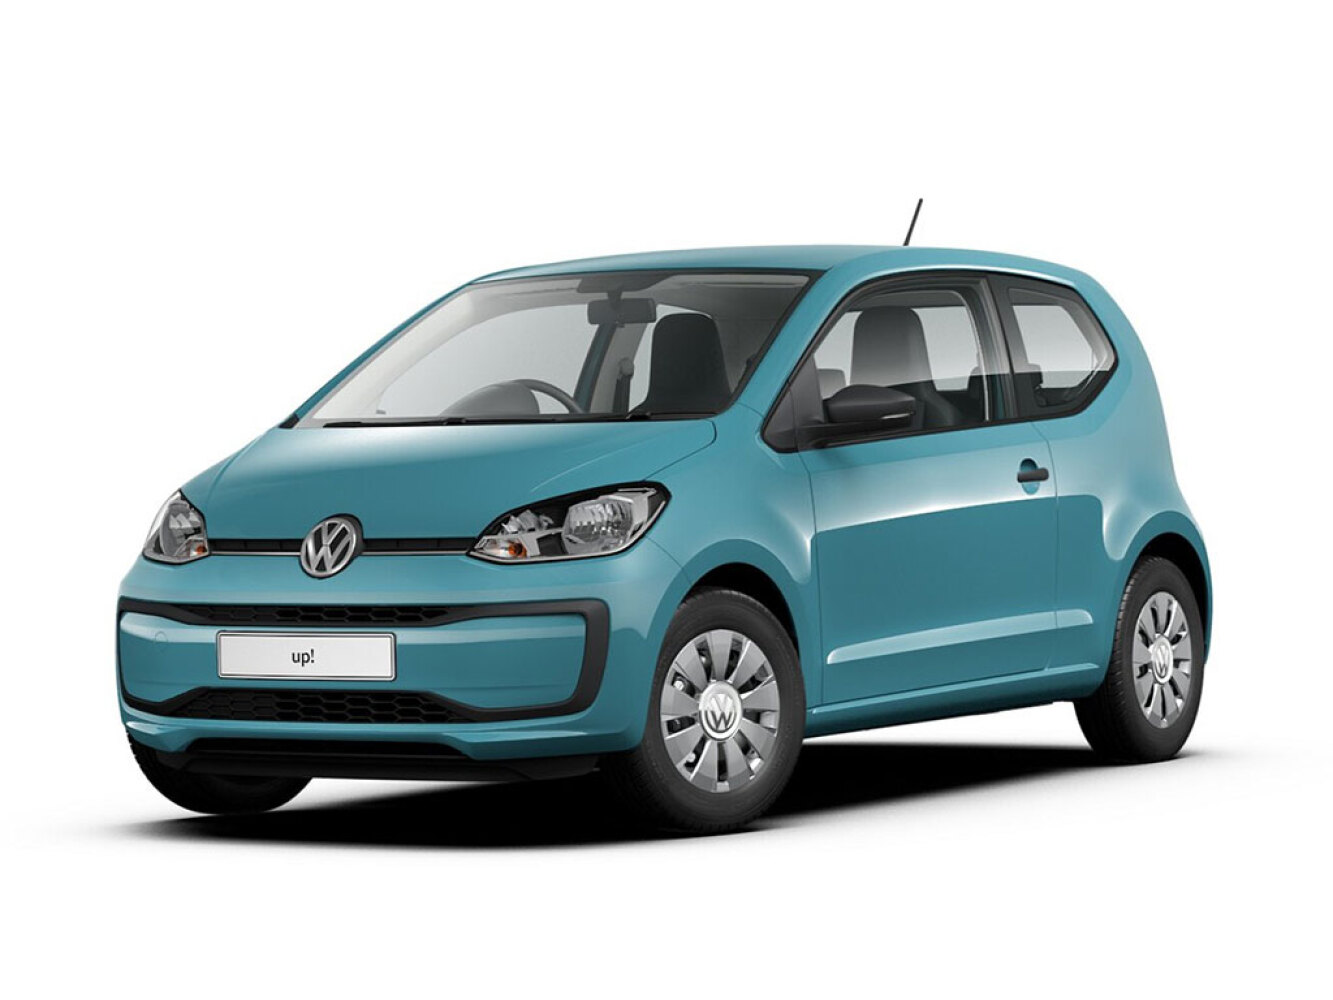 new volkswagen up 1 0 take up 3dr petrol hatchback for. Black Bedroom Furniture Sets. Home Design Ideas